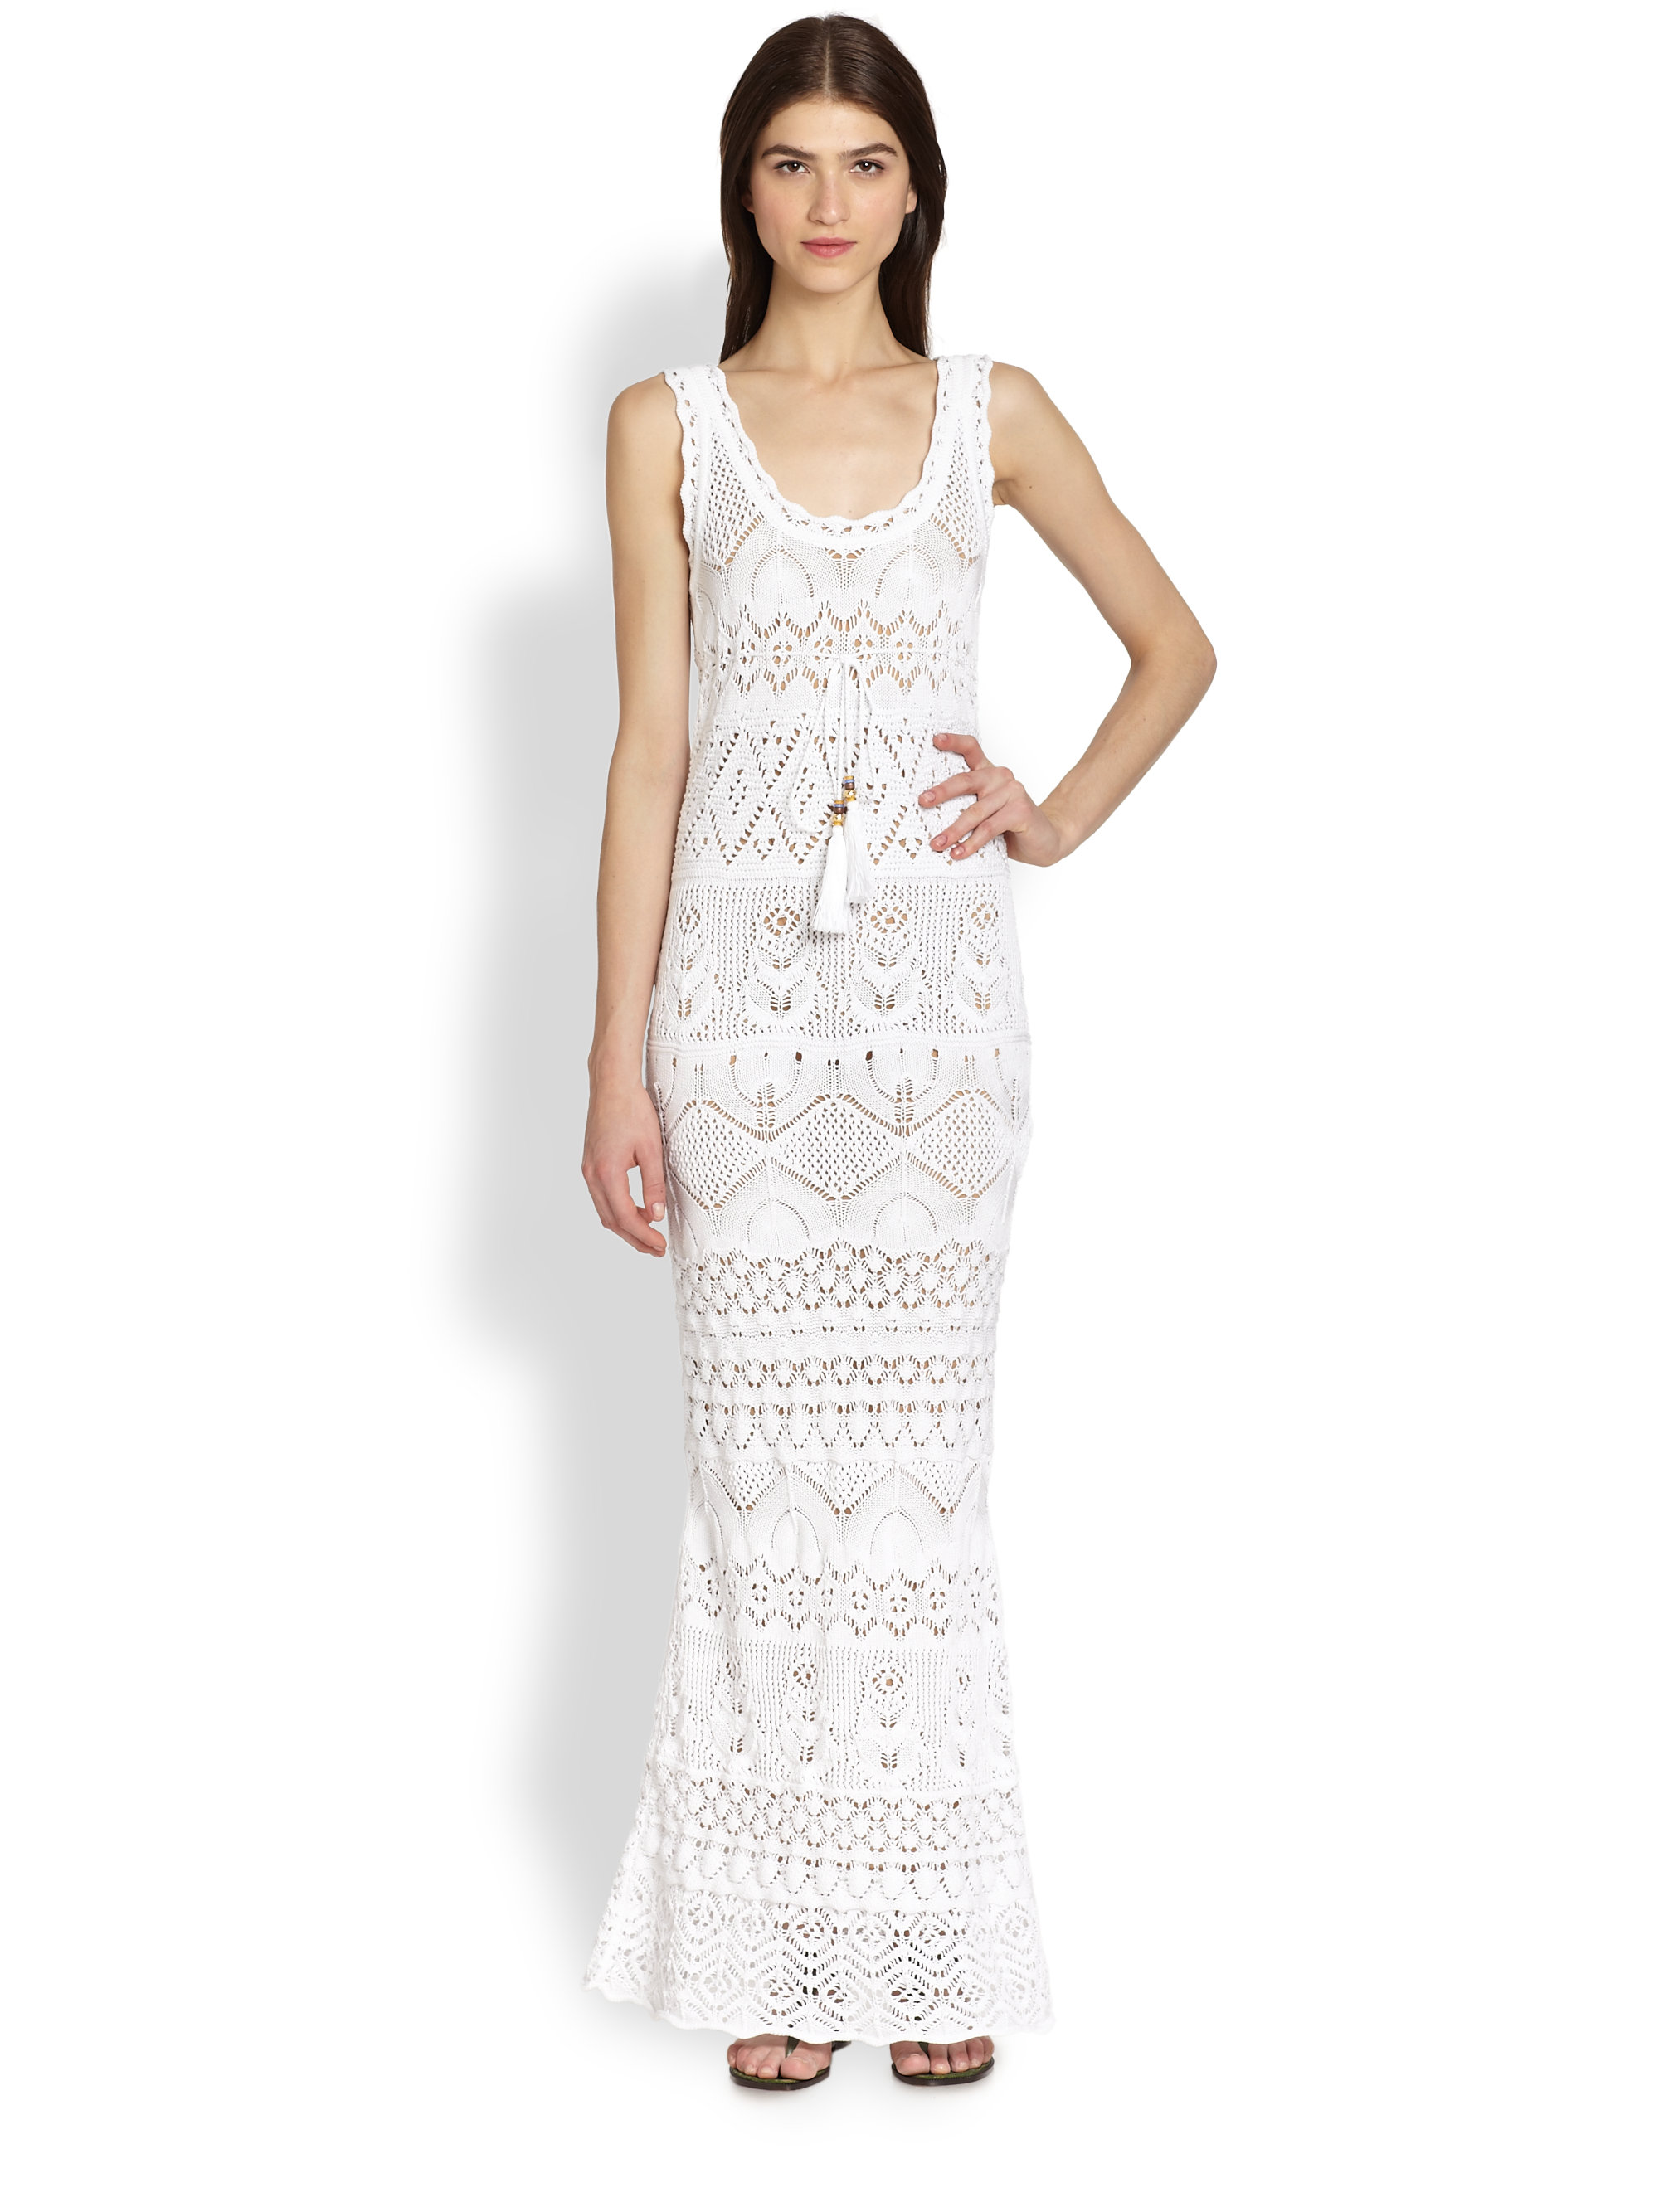 Emilio pucci Sleeveless Crochetknit Maxi Dress in White | Lyst